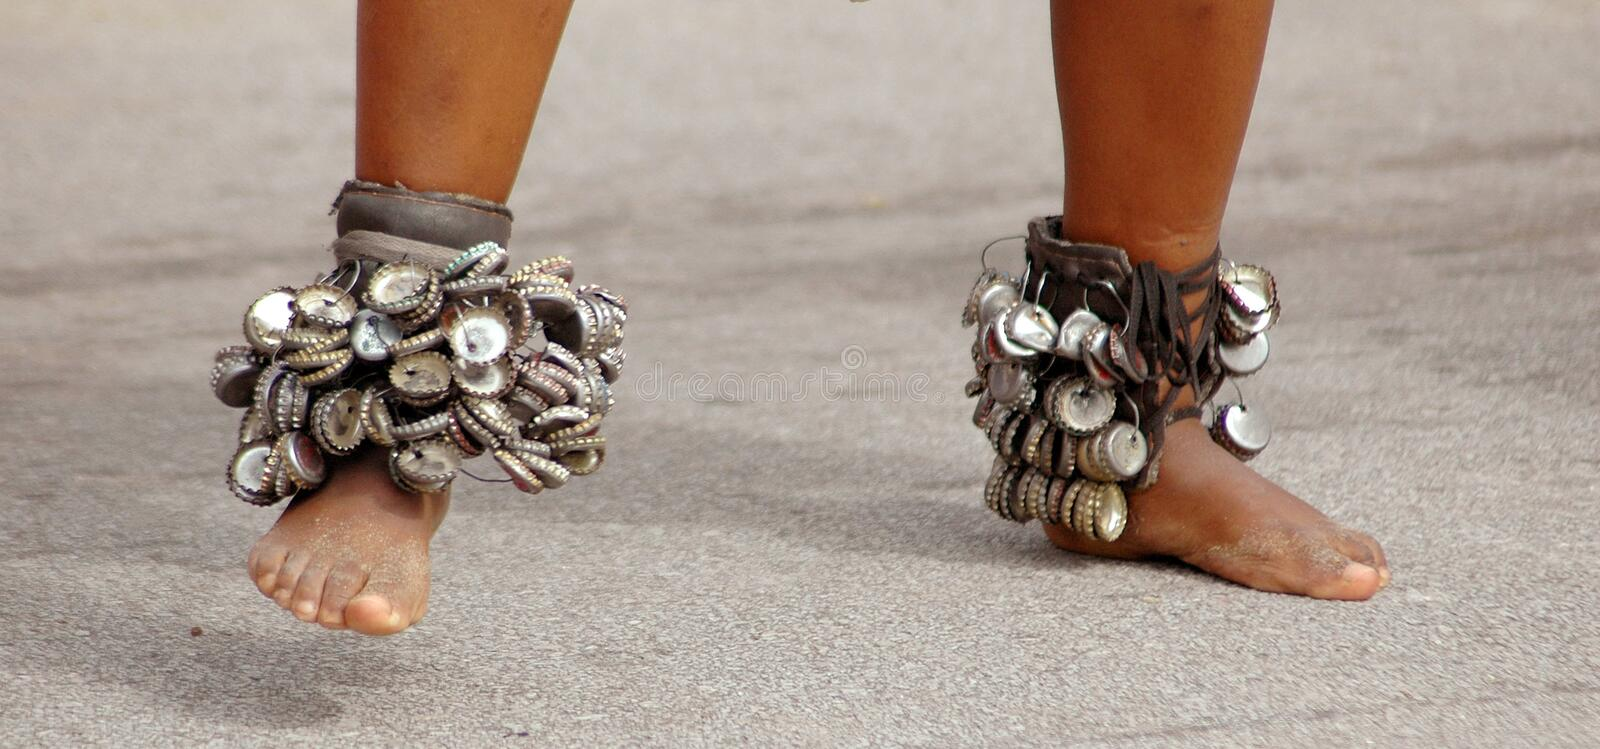 African bare feet dancing royalty free stock image